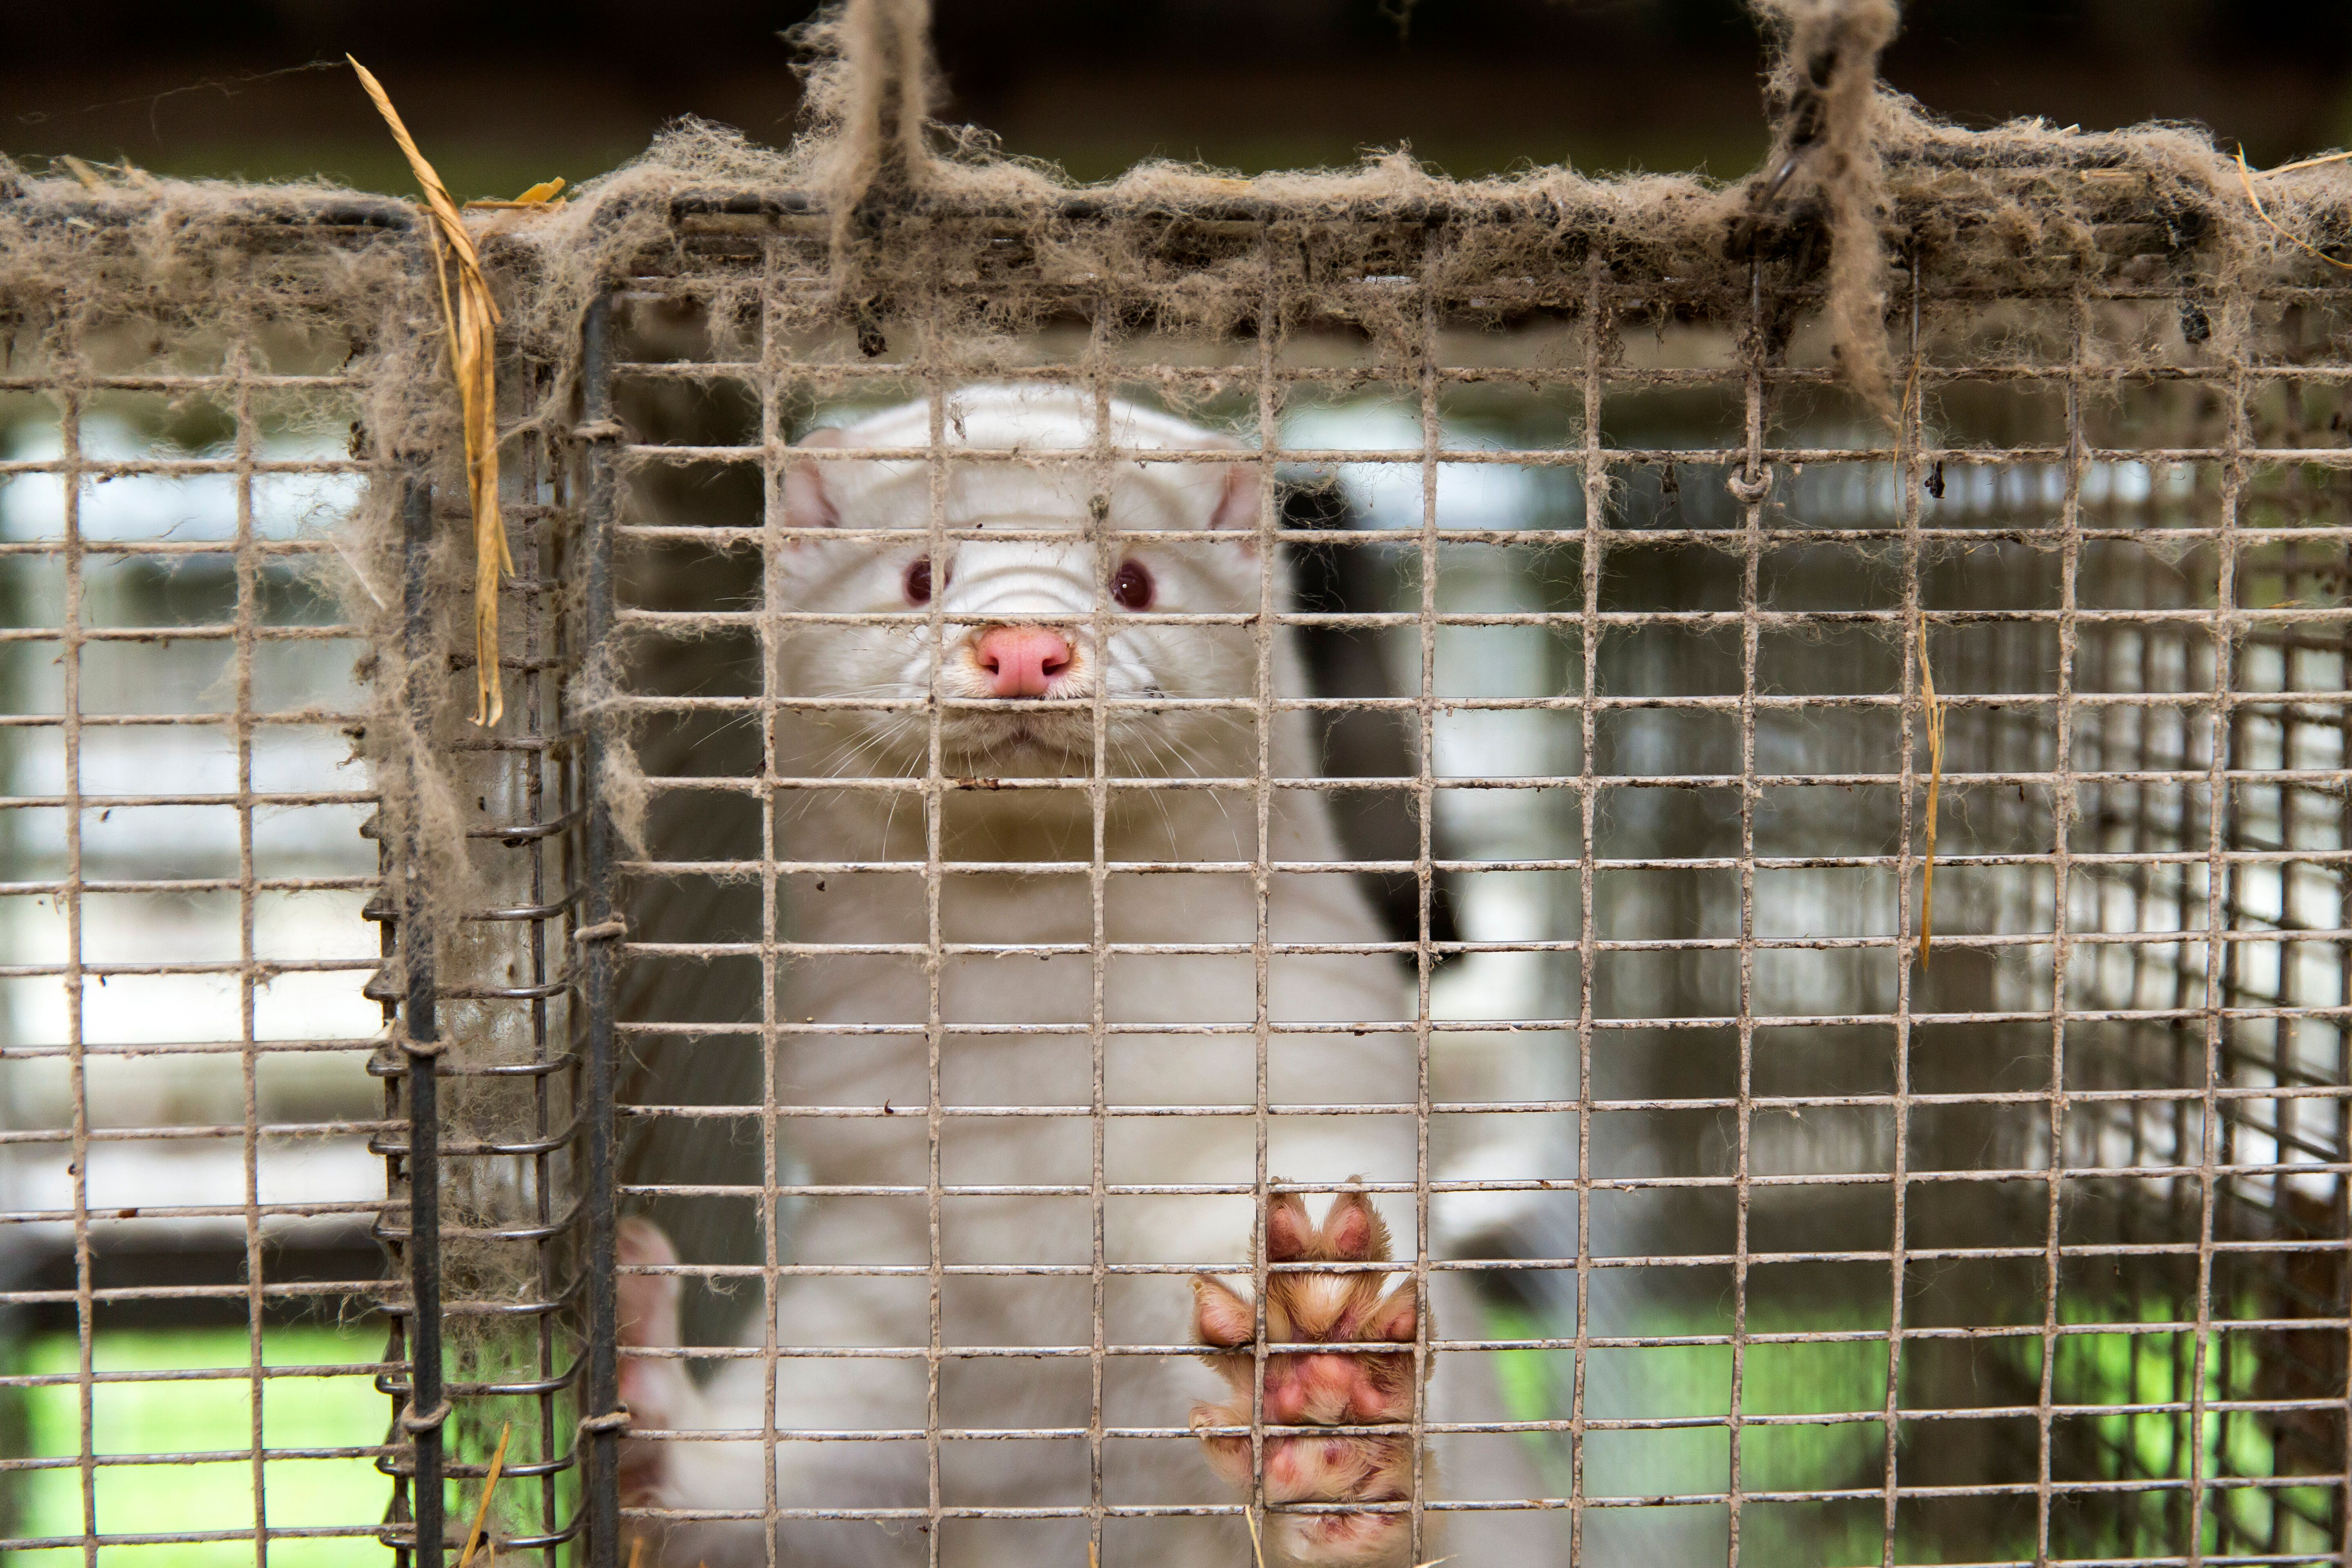 'Zombie' Minks Culled Over COVID-19 Fears Are Rising From Their Mass Graves